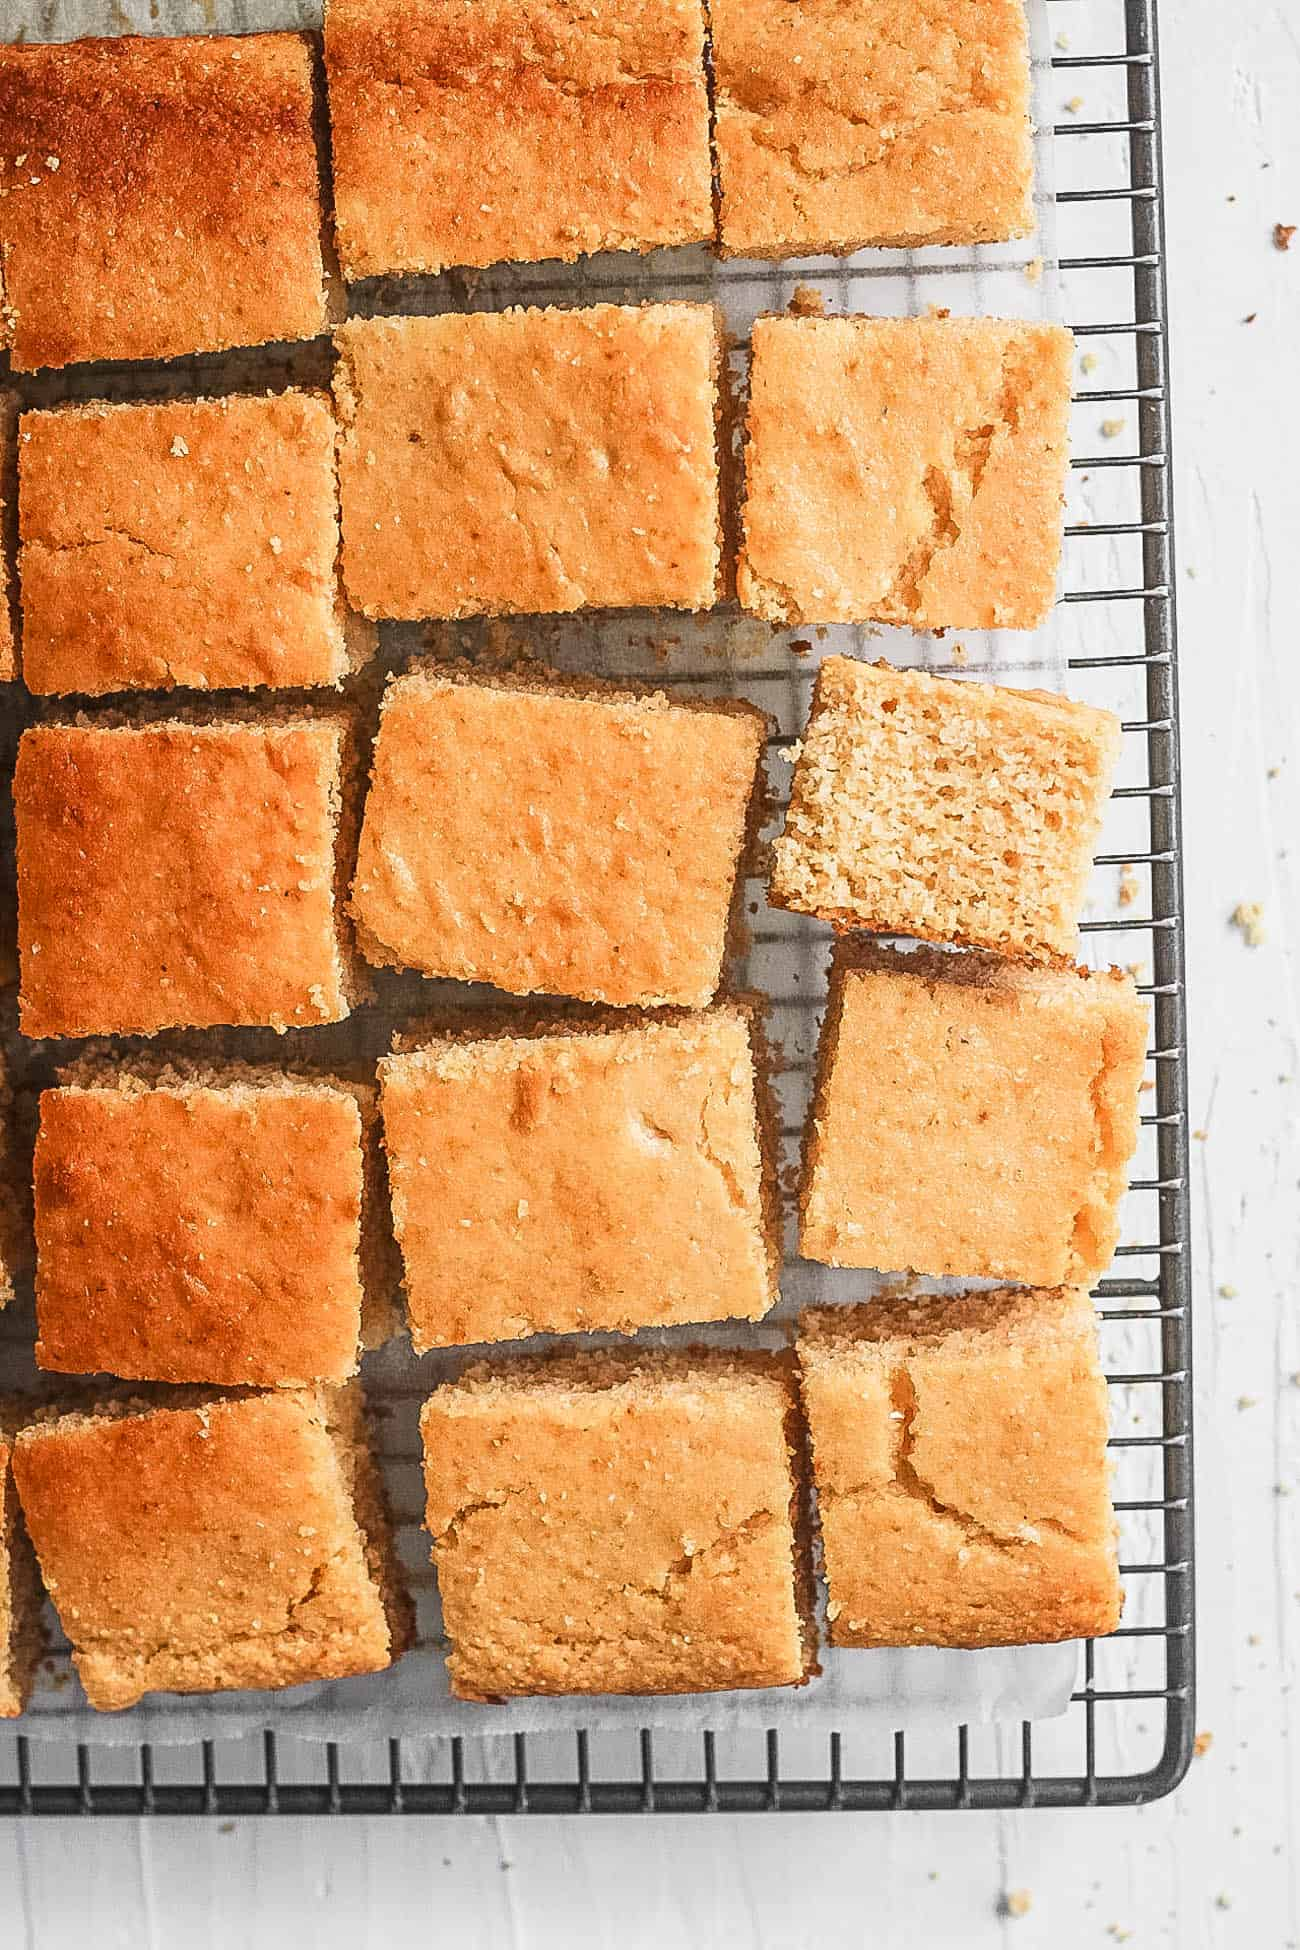 healthy cornbread (with vegan option) on a wire rack